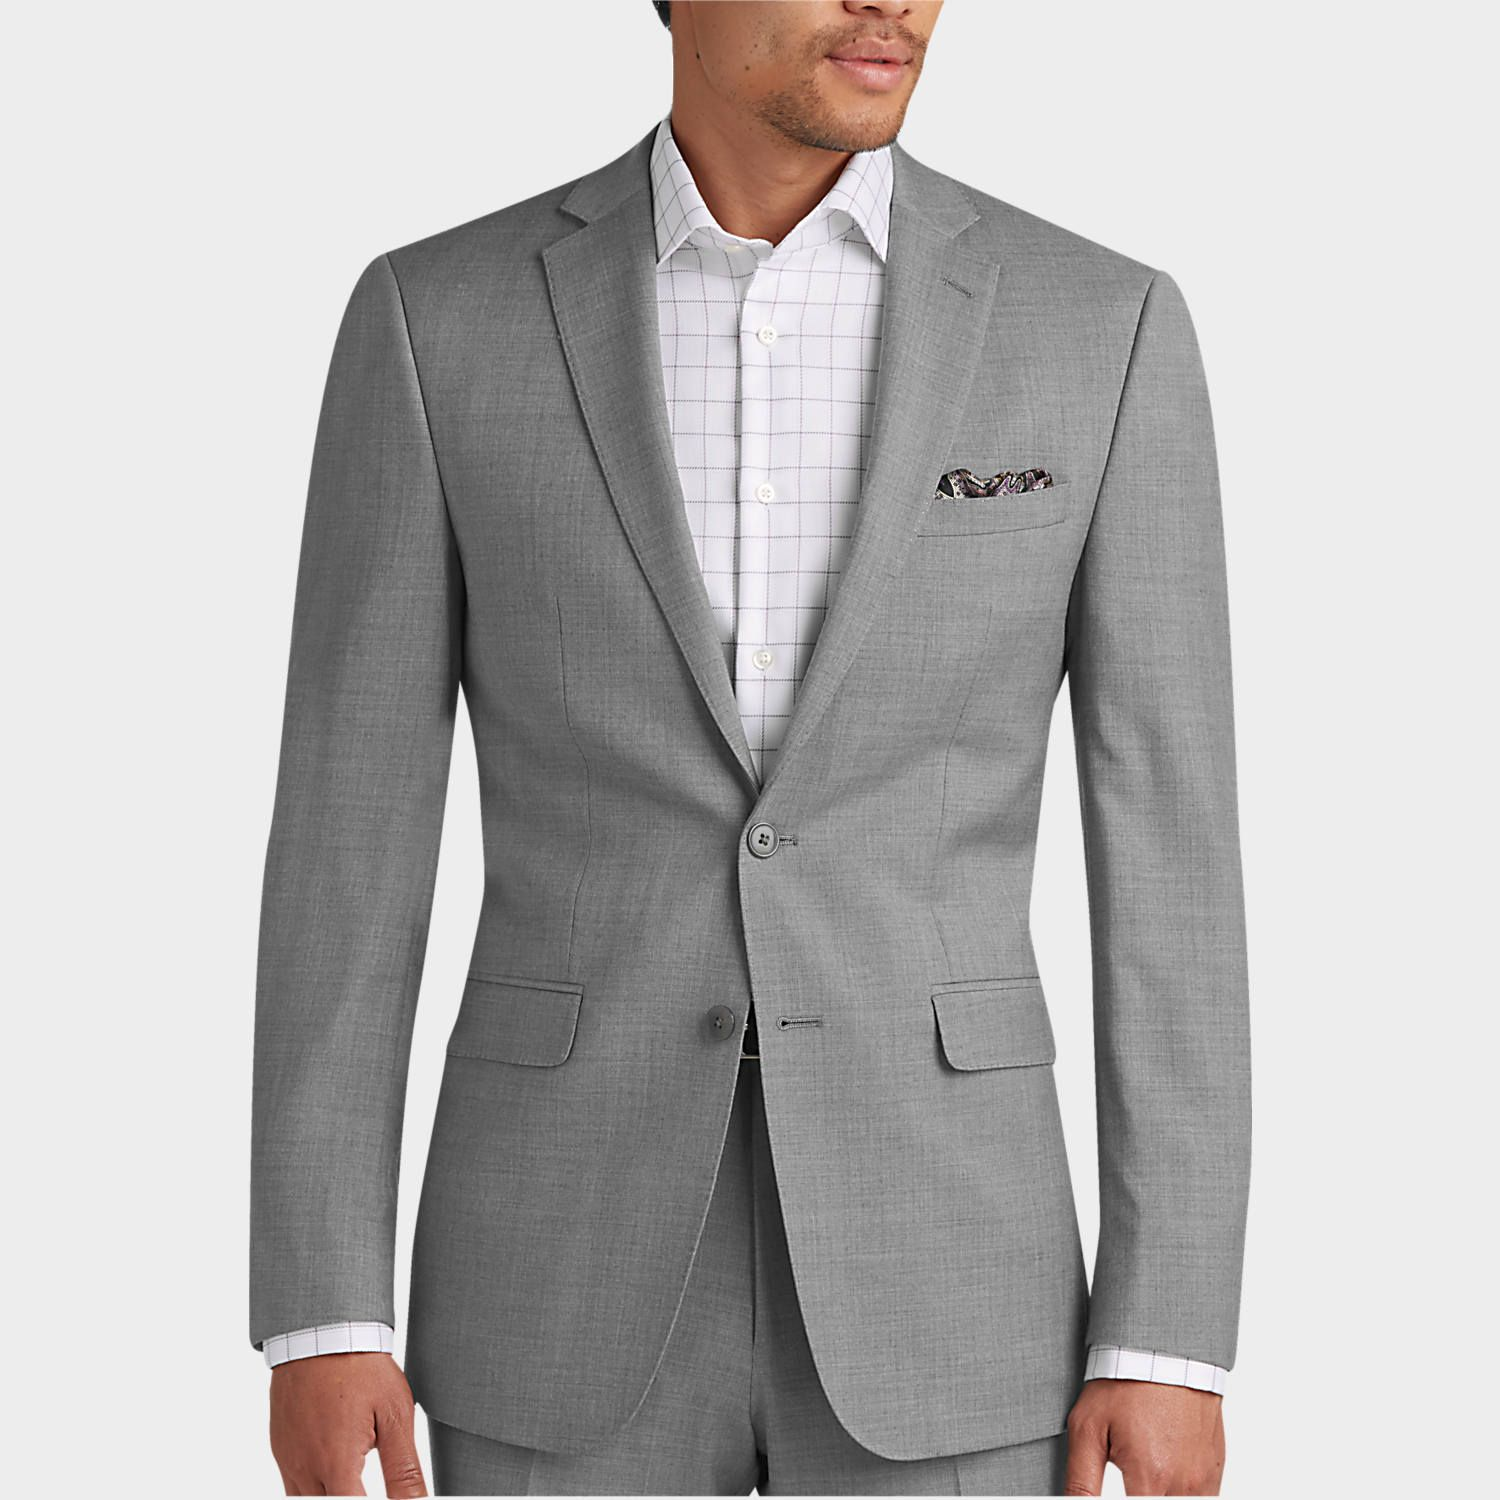 Buy A Calvin Klein Light Gray Pick Stitch Extreme Fit Suit